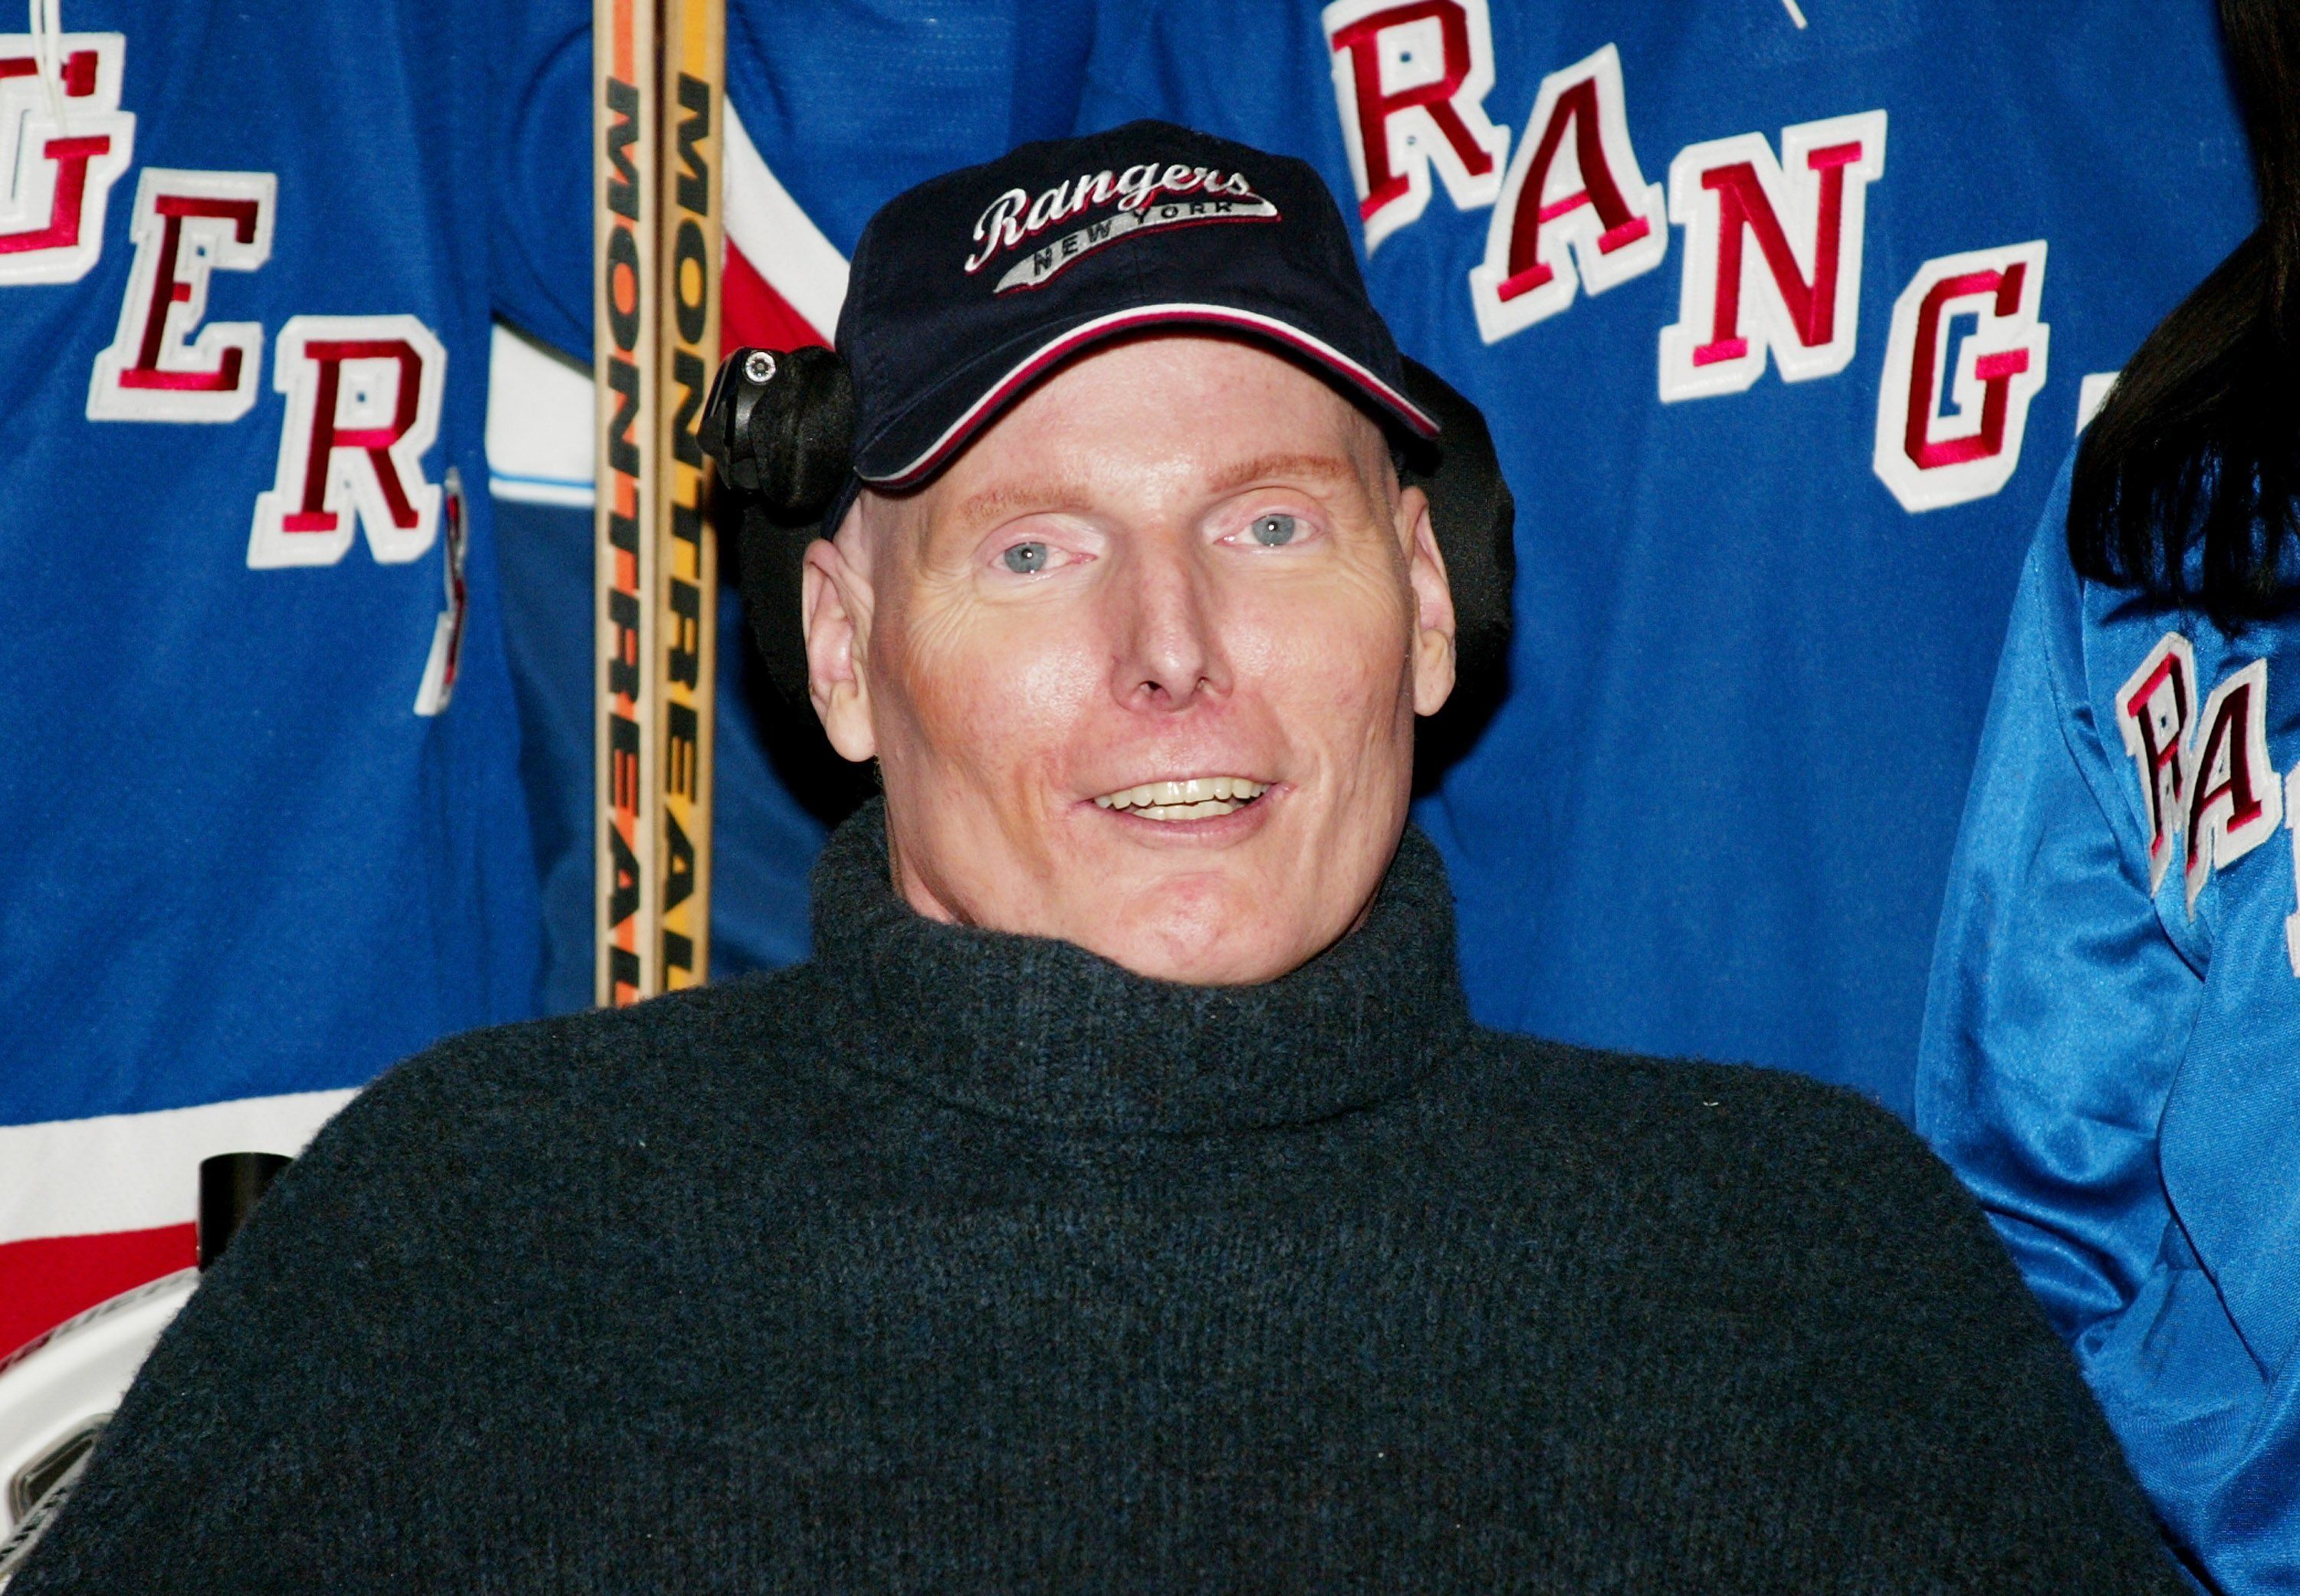 Christopher Reeve on January 25, 2004 in New York City | Source: Getty Images